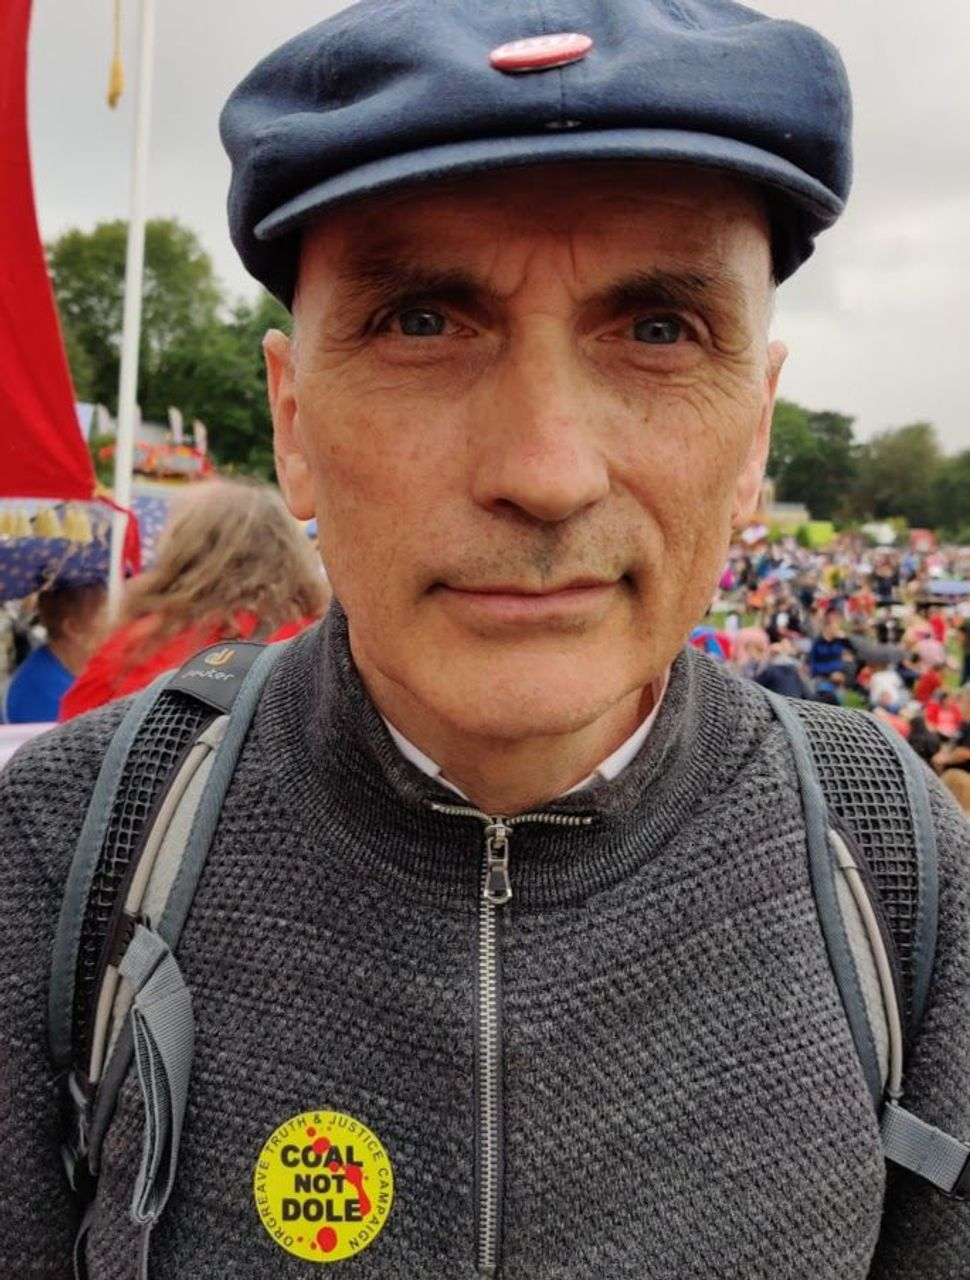 Labour MP Chris Williamson